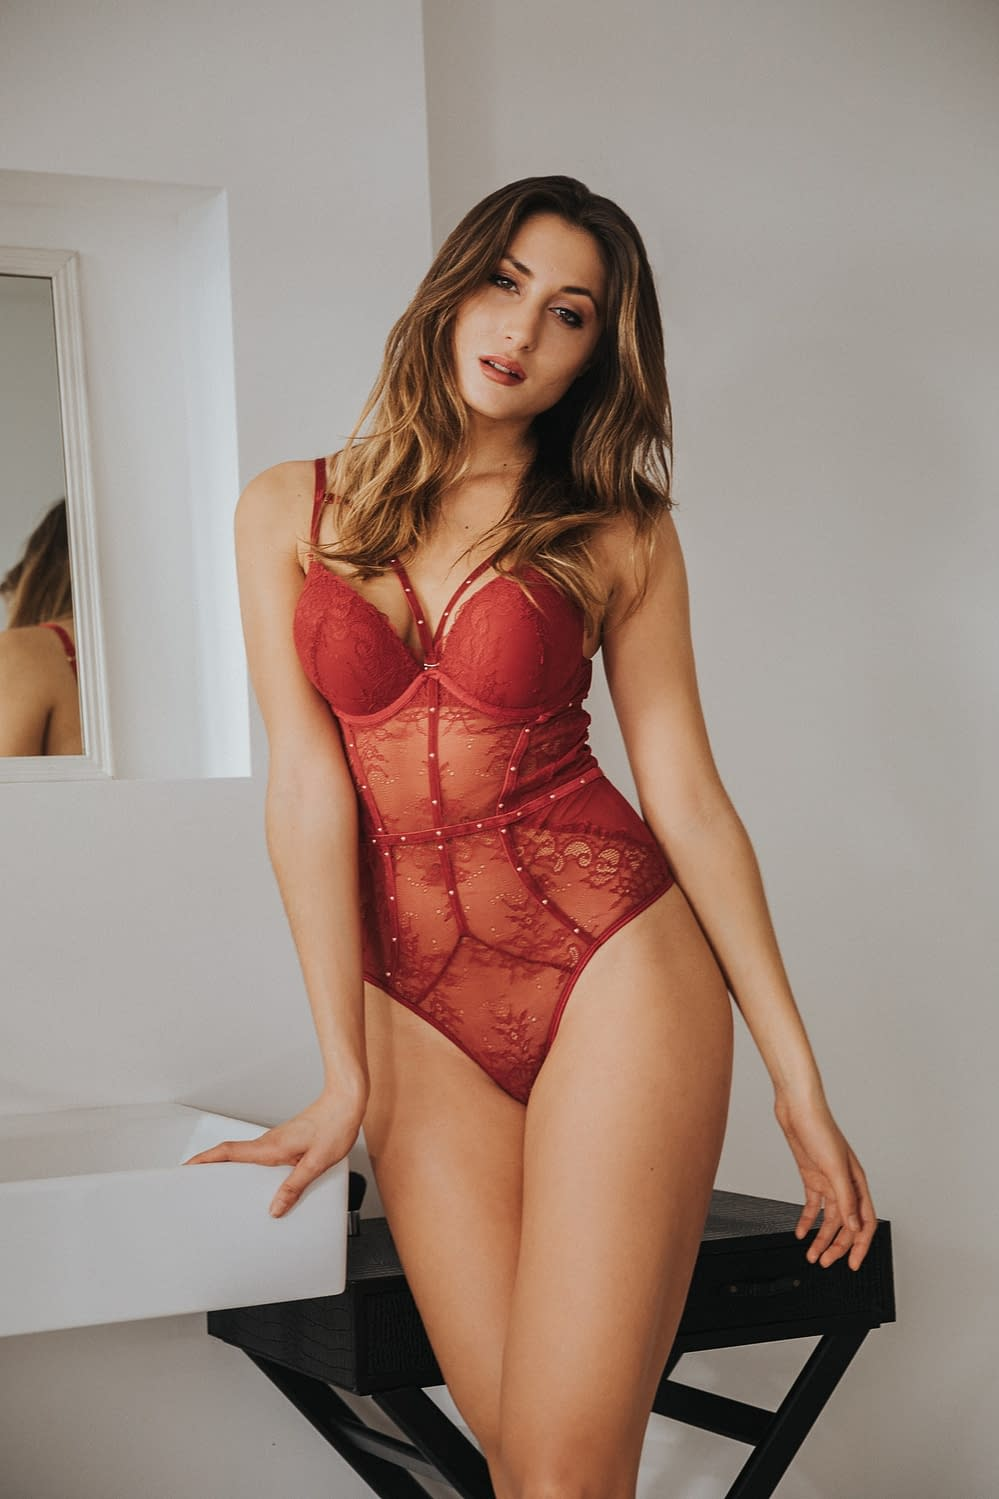 Red Lingerie Nicole